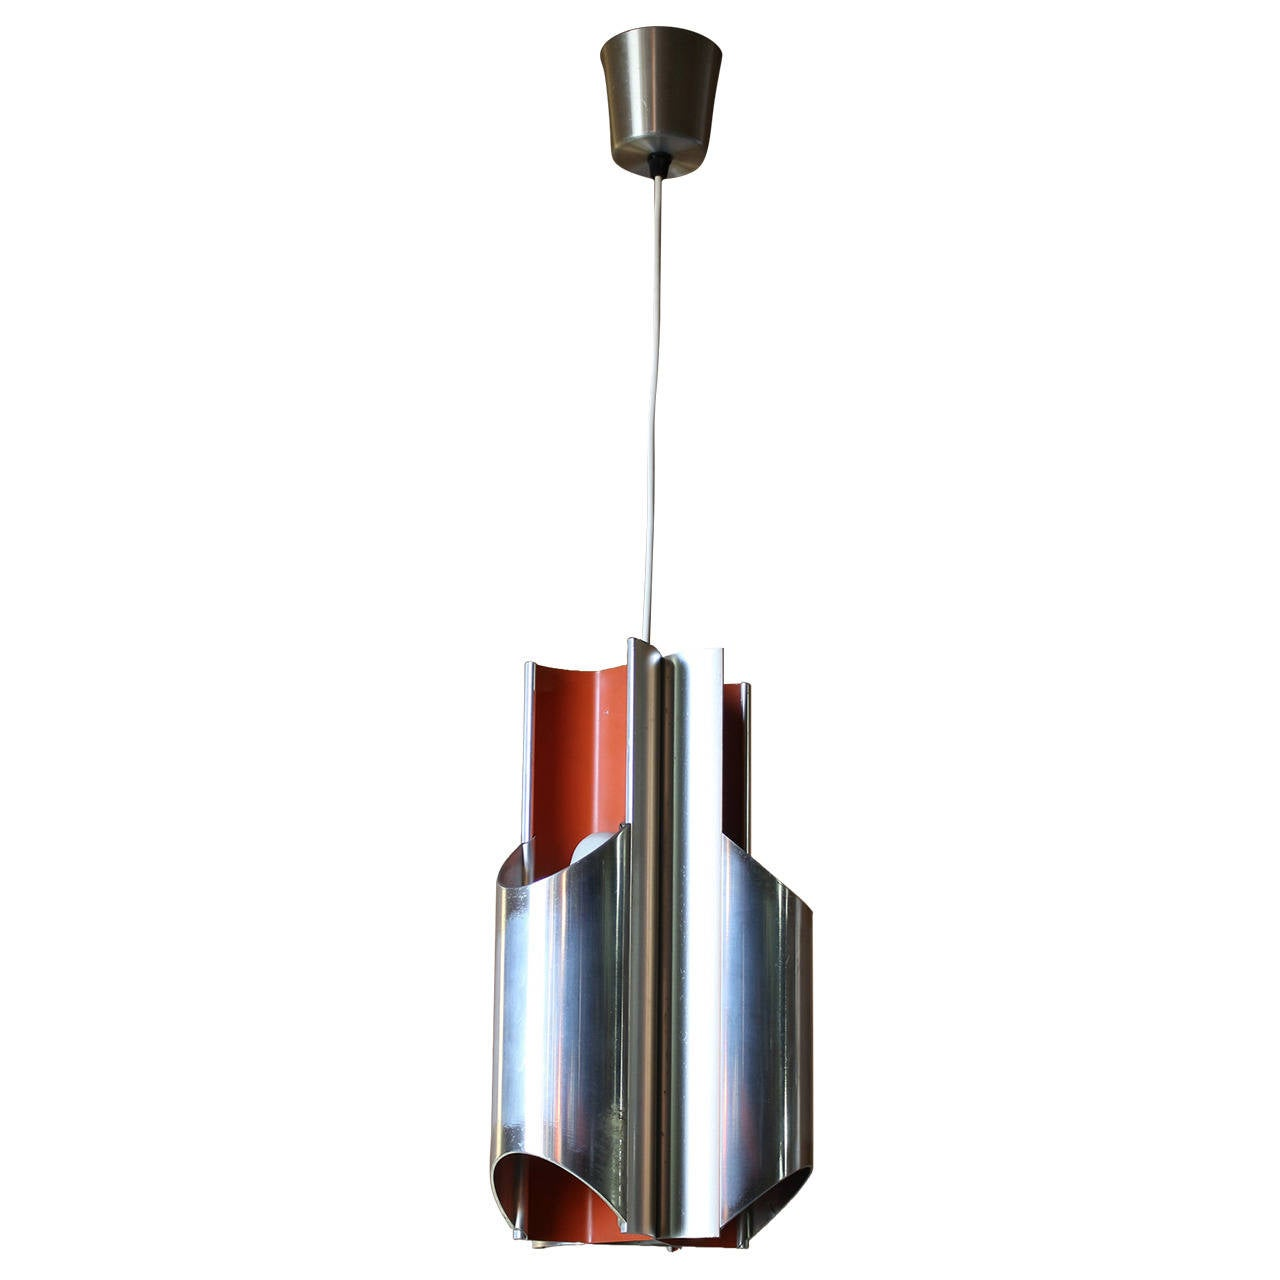 1960s Danish Pendant by Bent Karlby for Lyfa